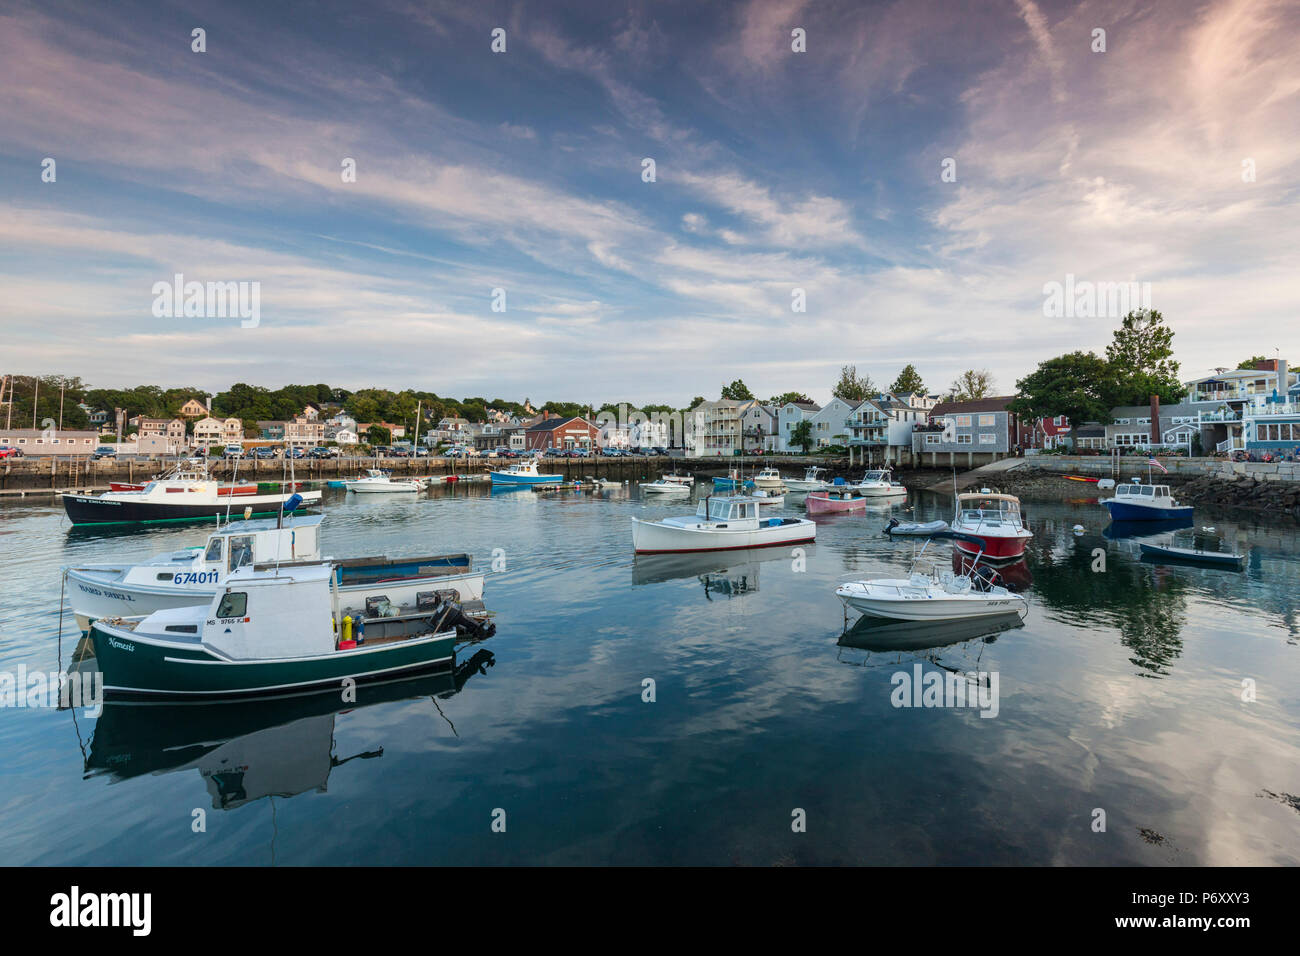 Estados Unidos, Massachusetts, Cape Ann, Rockport, Rockport Harbor, el anochecer Imagen De Stock